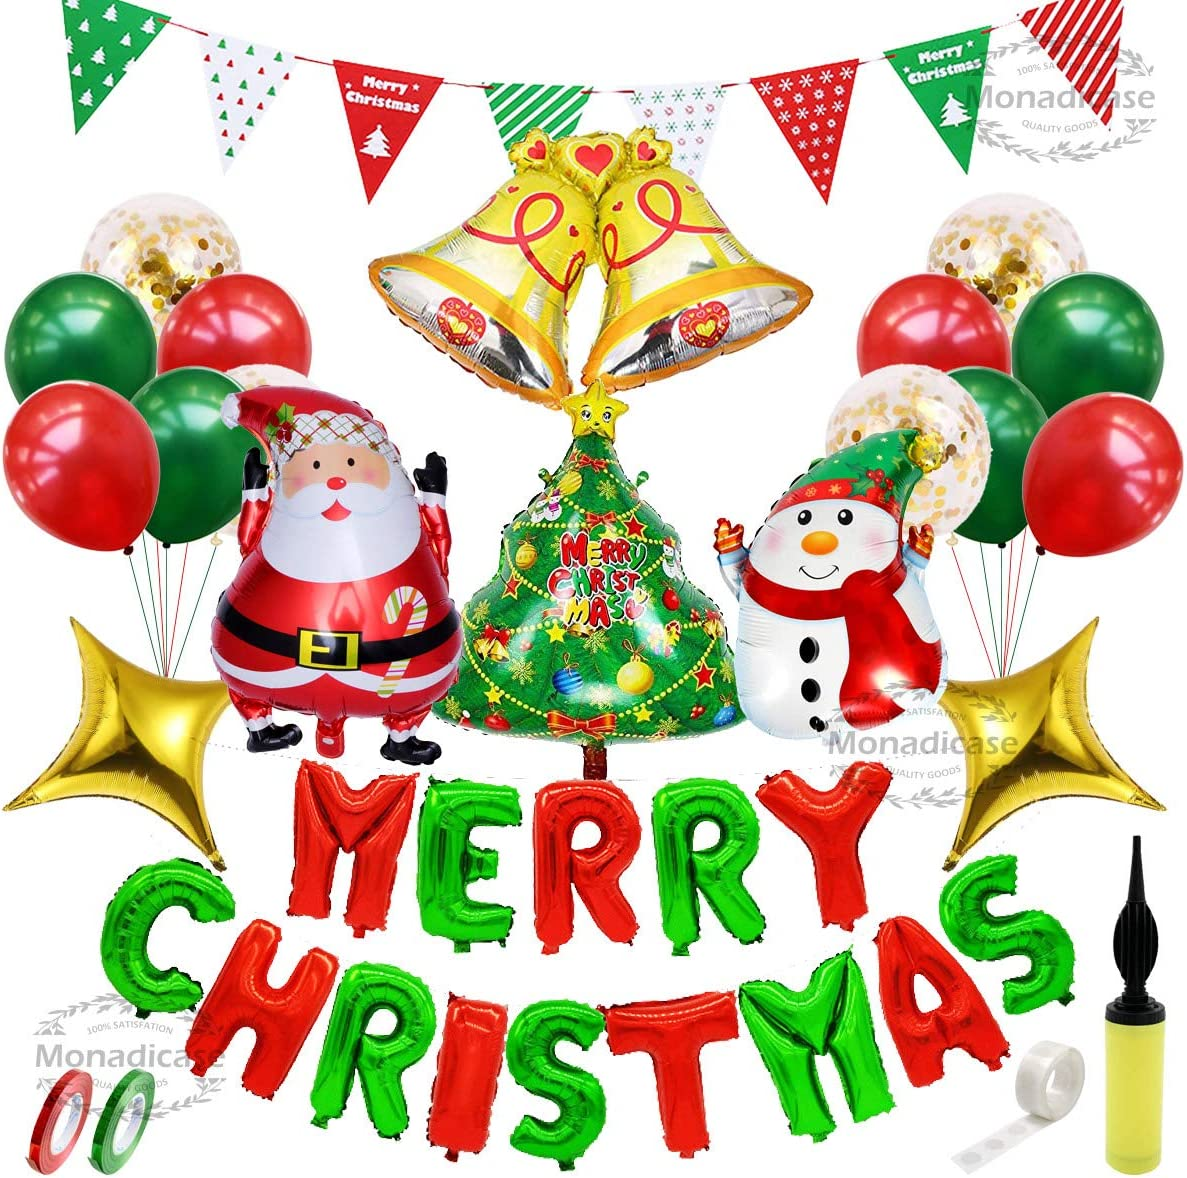 Christmas Decorations Balloon Kit 50 Pcs - Merry Christmas/Santa Claus/Xmas Tree/Snowman/Bell/Star Foil Balloon, Gold Sequin/Red Green Latex Balloon with Air Pump, Banner Gift for New Year Party Decor